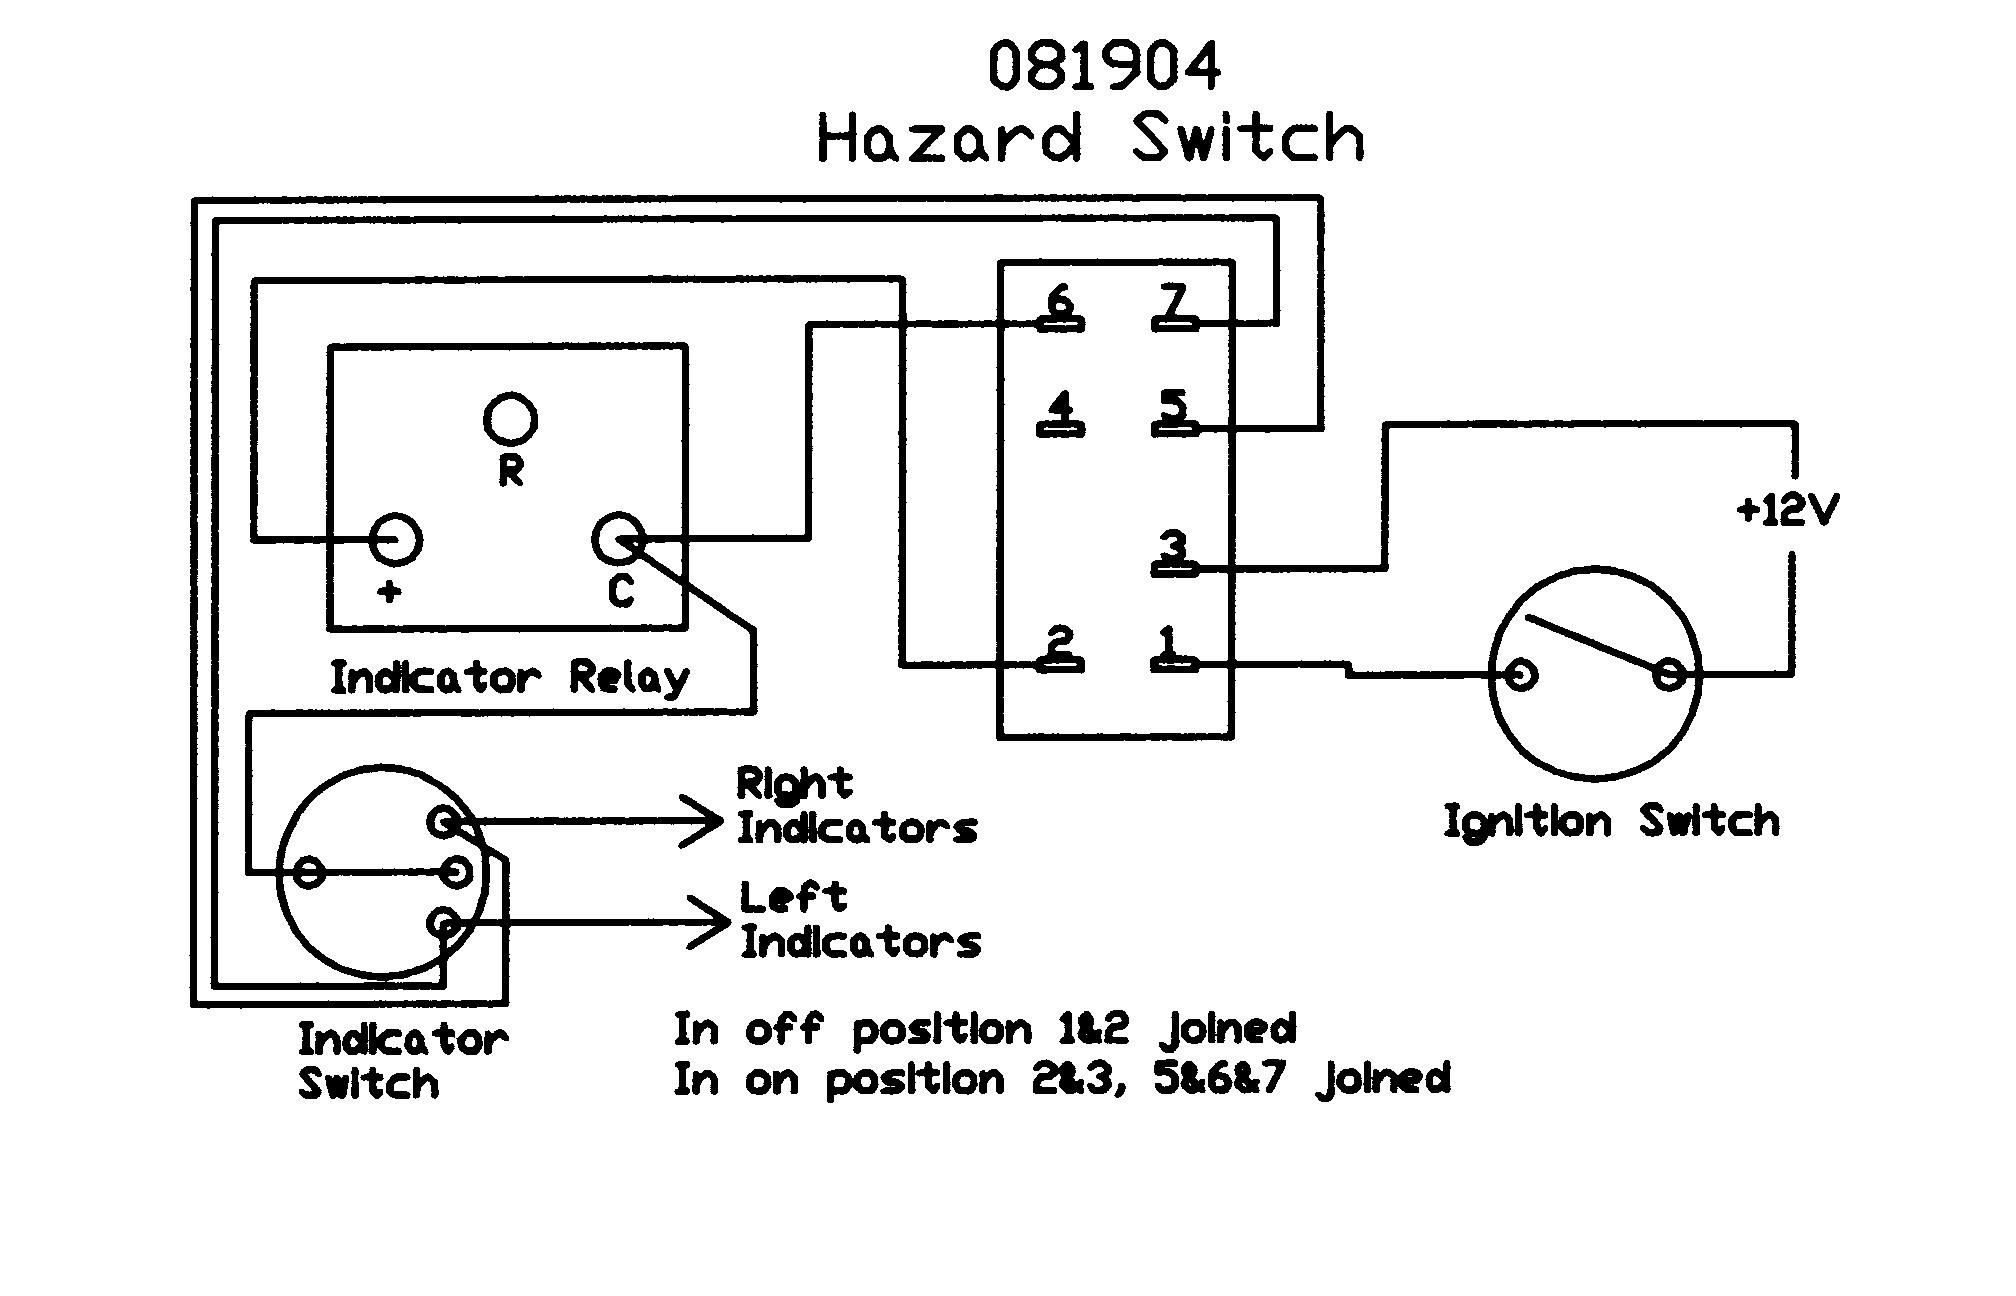 Wiring Diagram For Hazard Lights